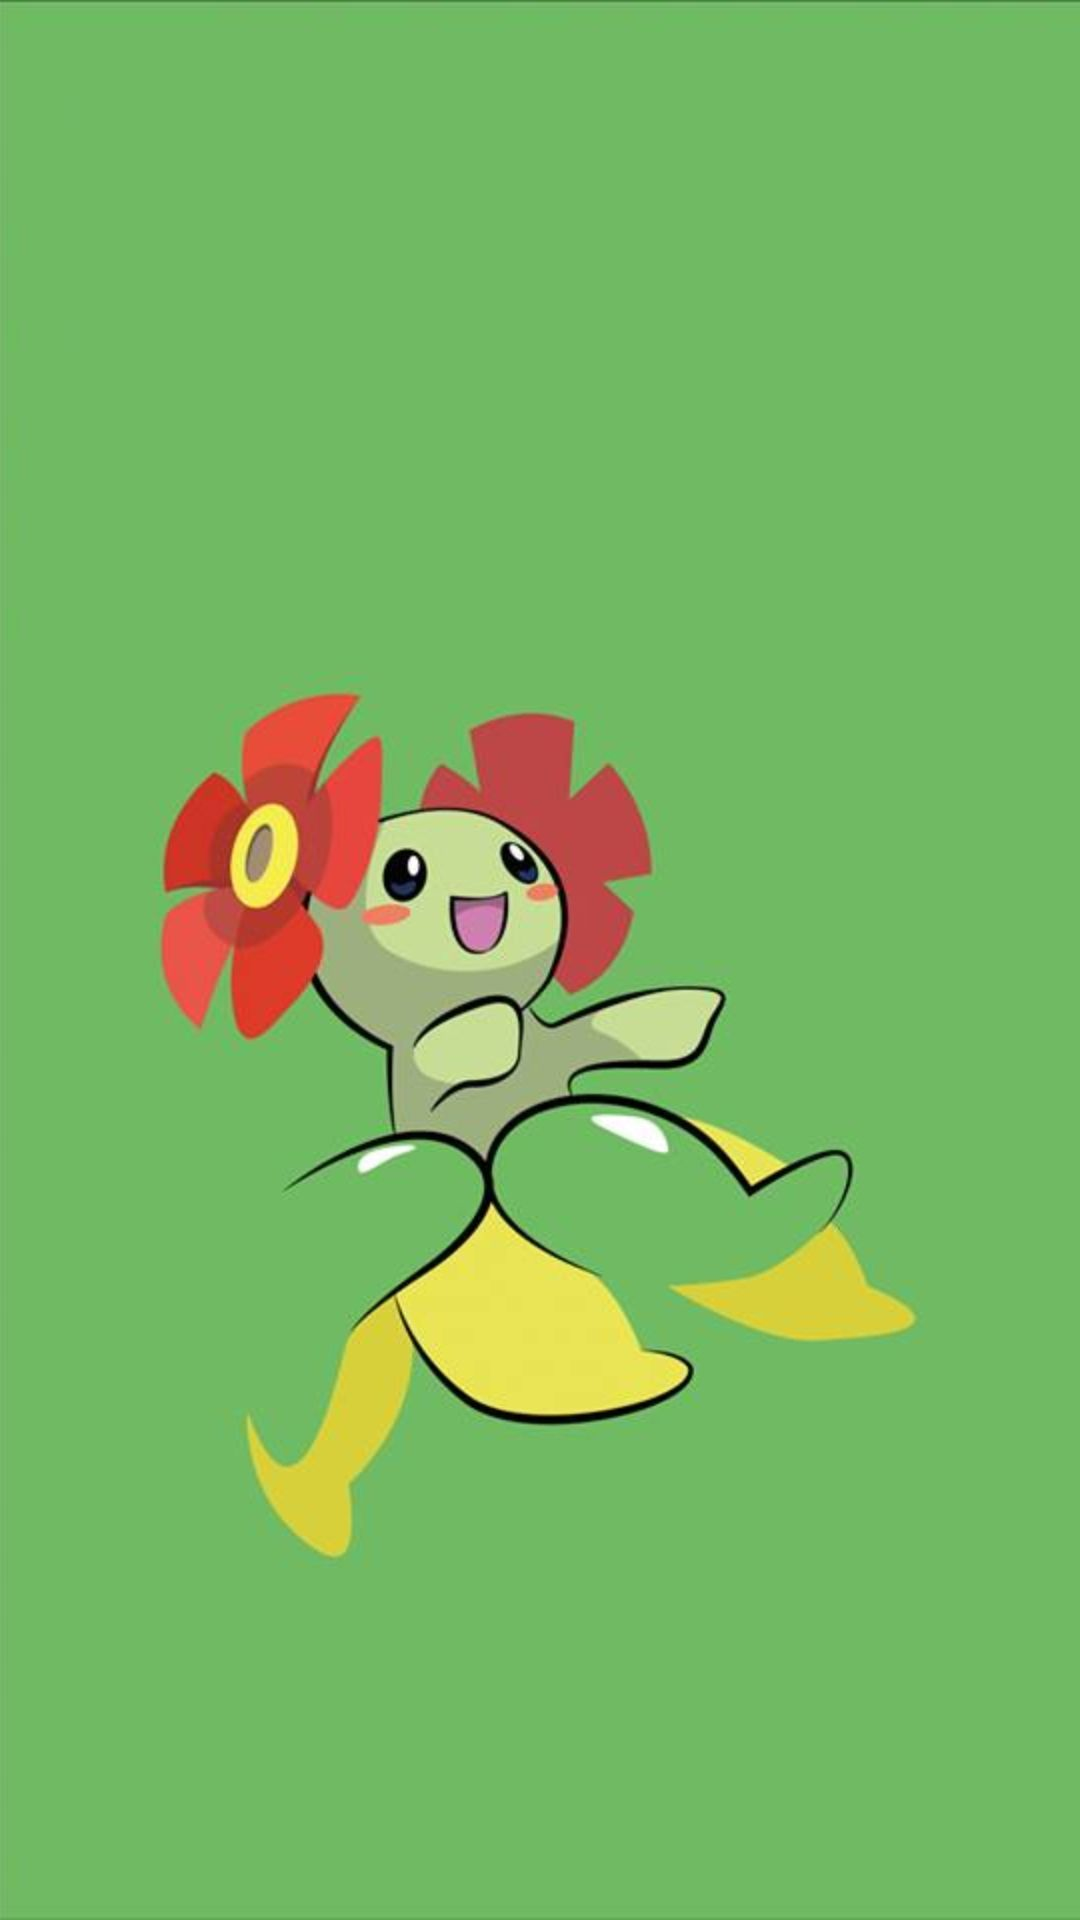 Bellossom – Tap to see more Pokemon Go wallpaper! | @mobile9 …